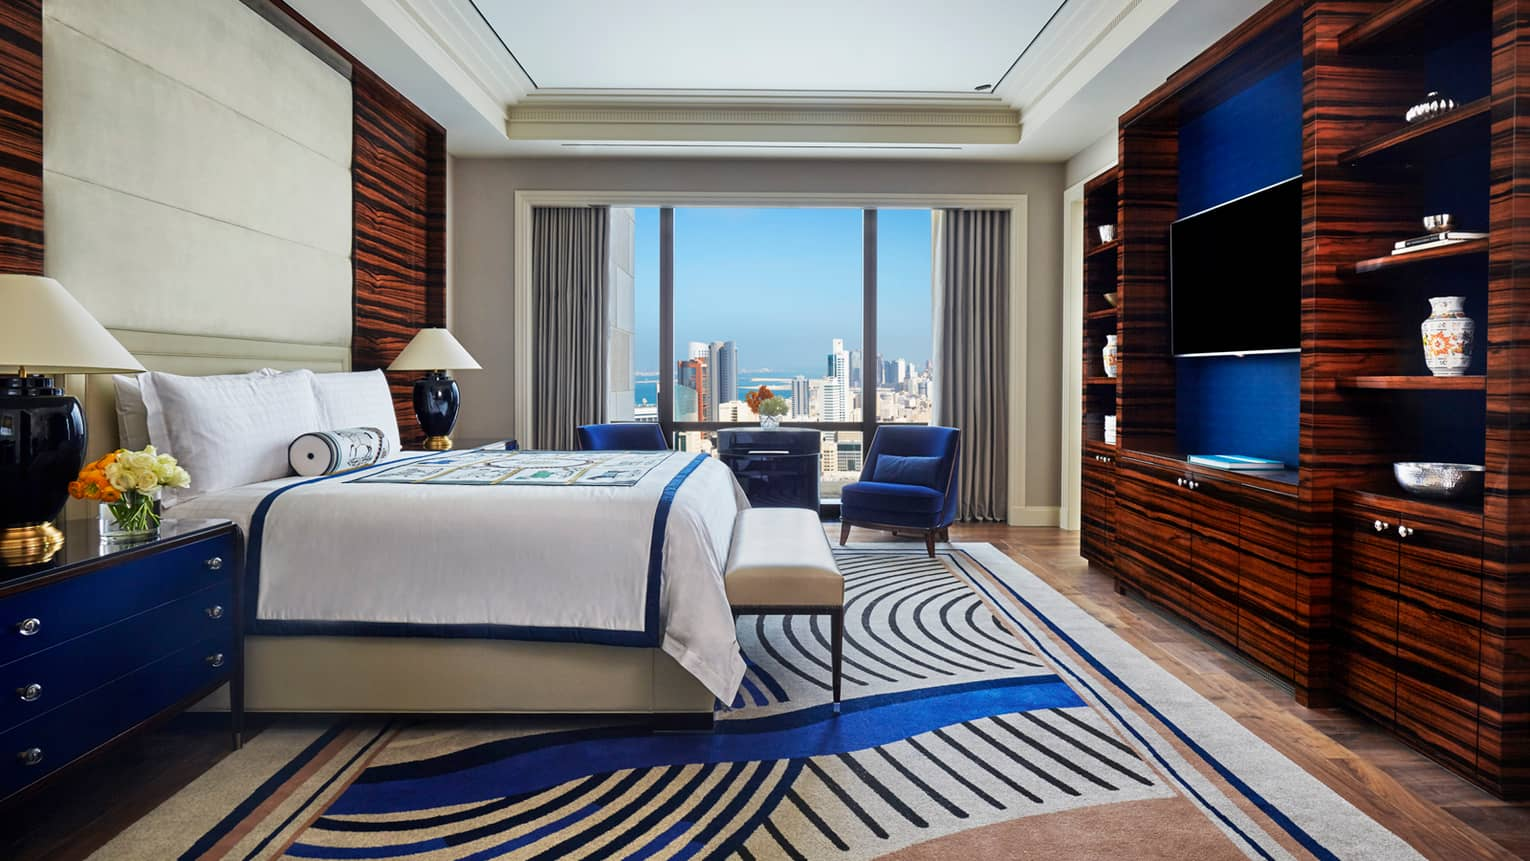 Superior Room side view of bed with decorative blanket and rolled pillow, modern blue carpet, armchair by window